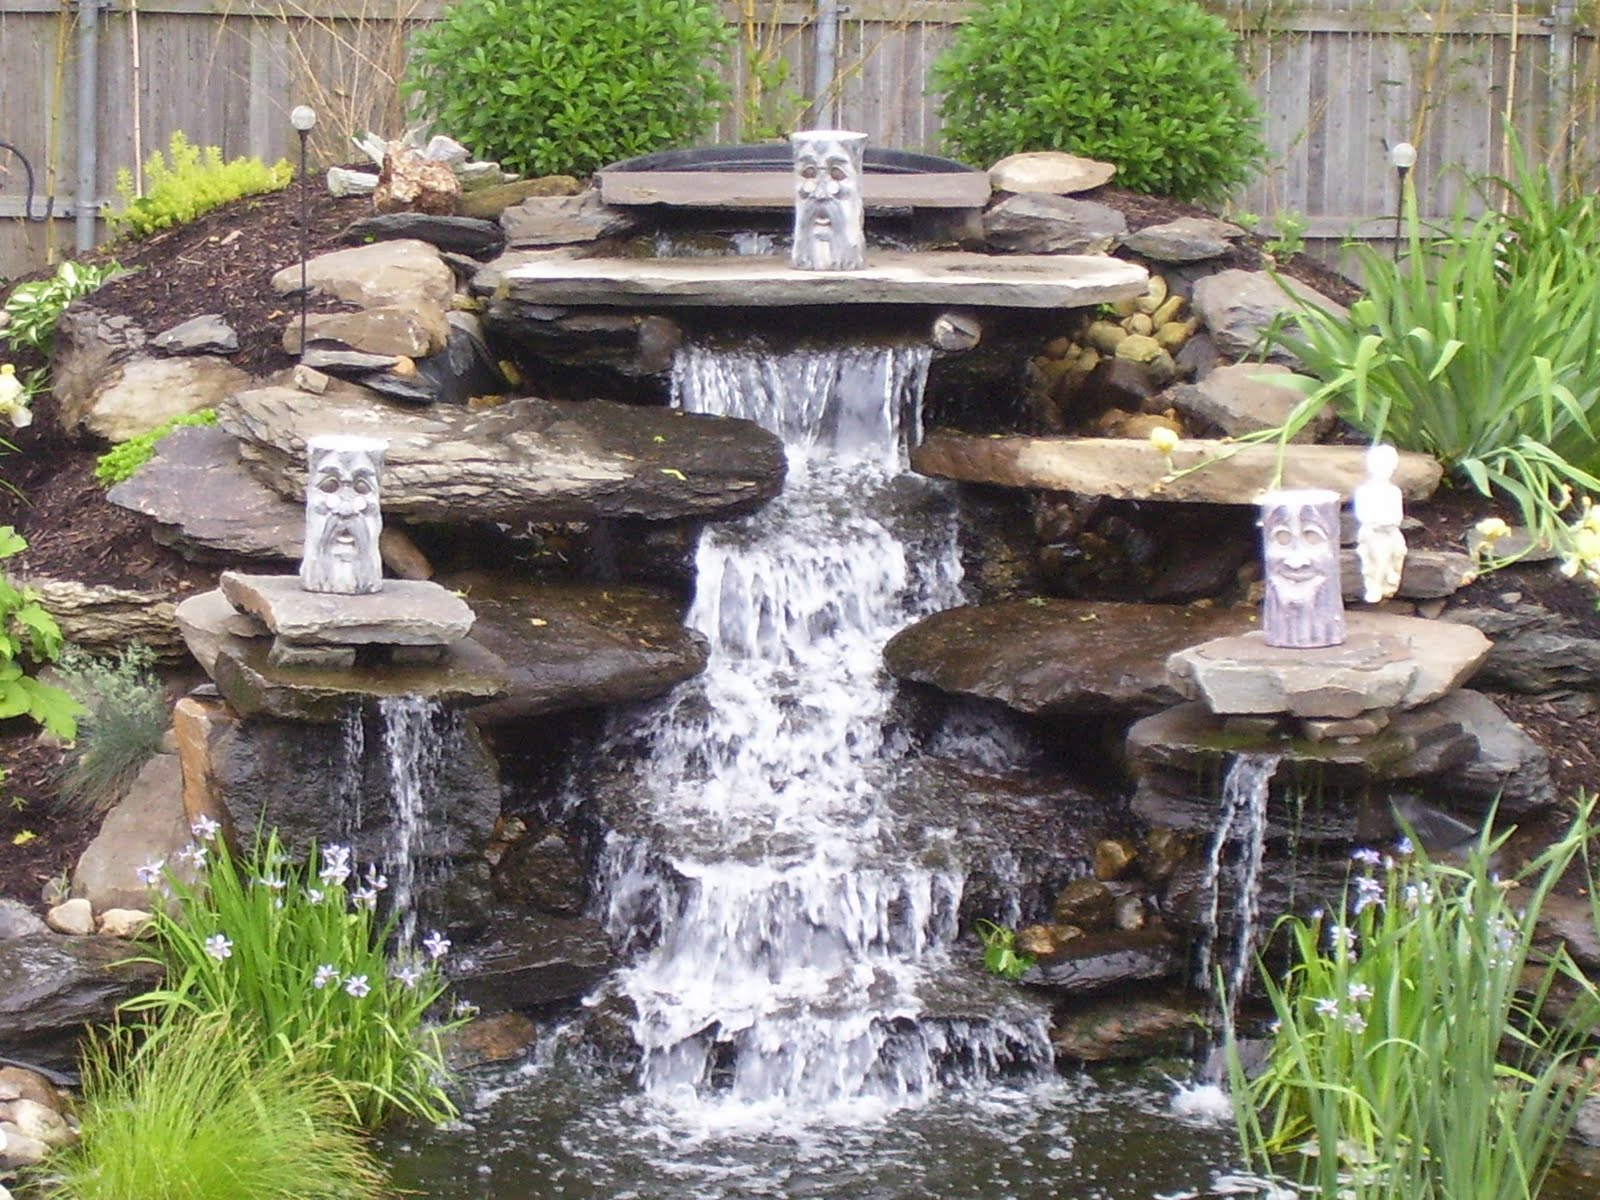 Waterfall Landscape Design Ideas waterfall designs preformed waterfalls lawnsitecom lawn care landscaping waterfall ideas pinterest waterfall design dream pools and Landscaping Waterfalls